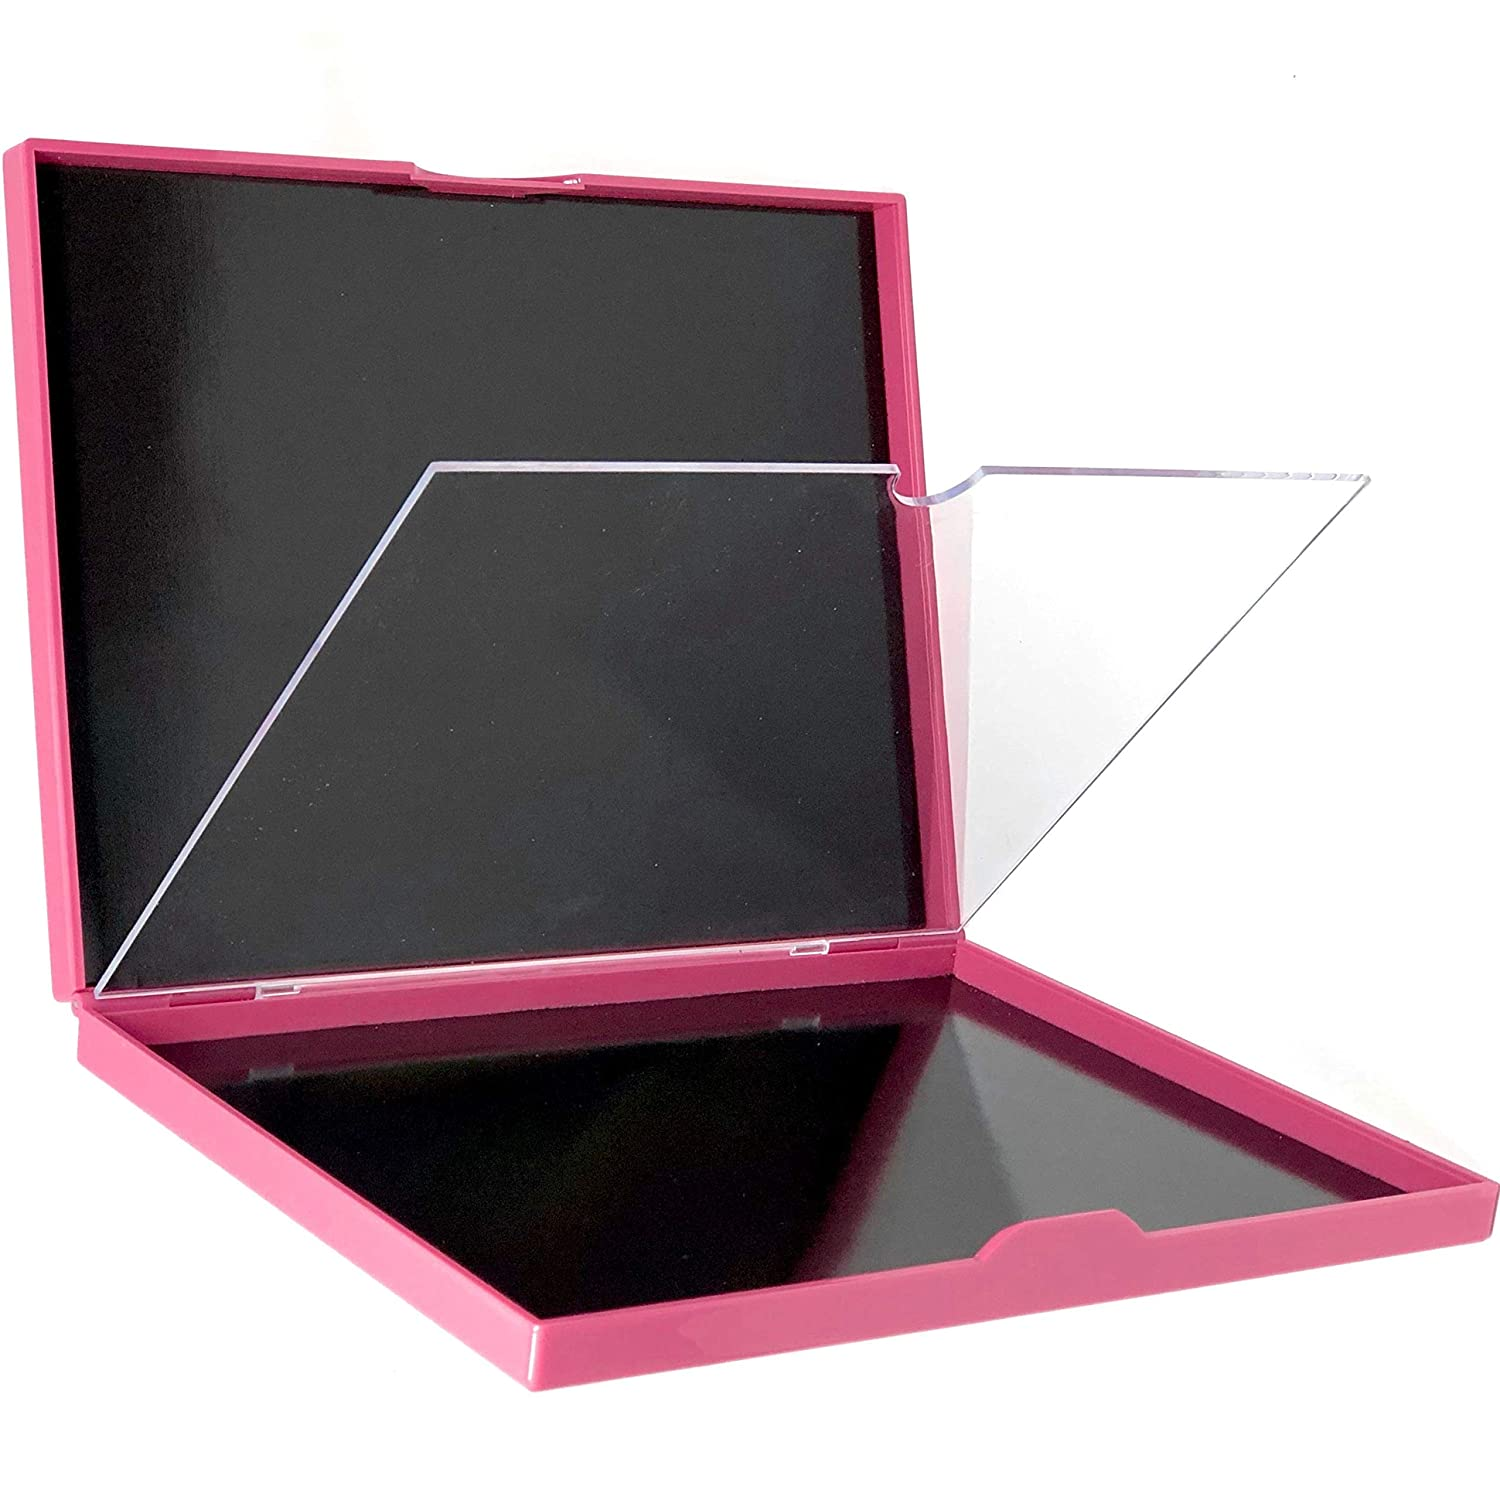 The Adept Palette Hot Pink - Double Sided Magnetic Empty Palette with Divider, Holds over 100 Single Round Standard Sized Eyeshadow Pans, Hardshell Case